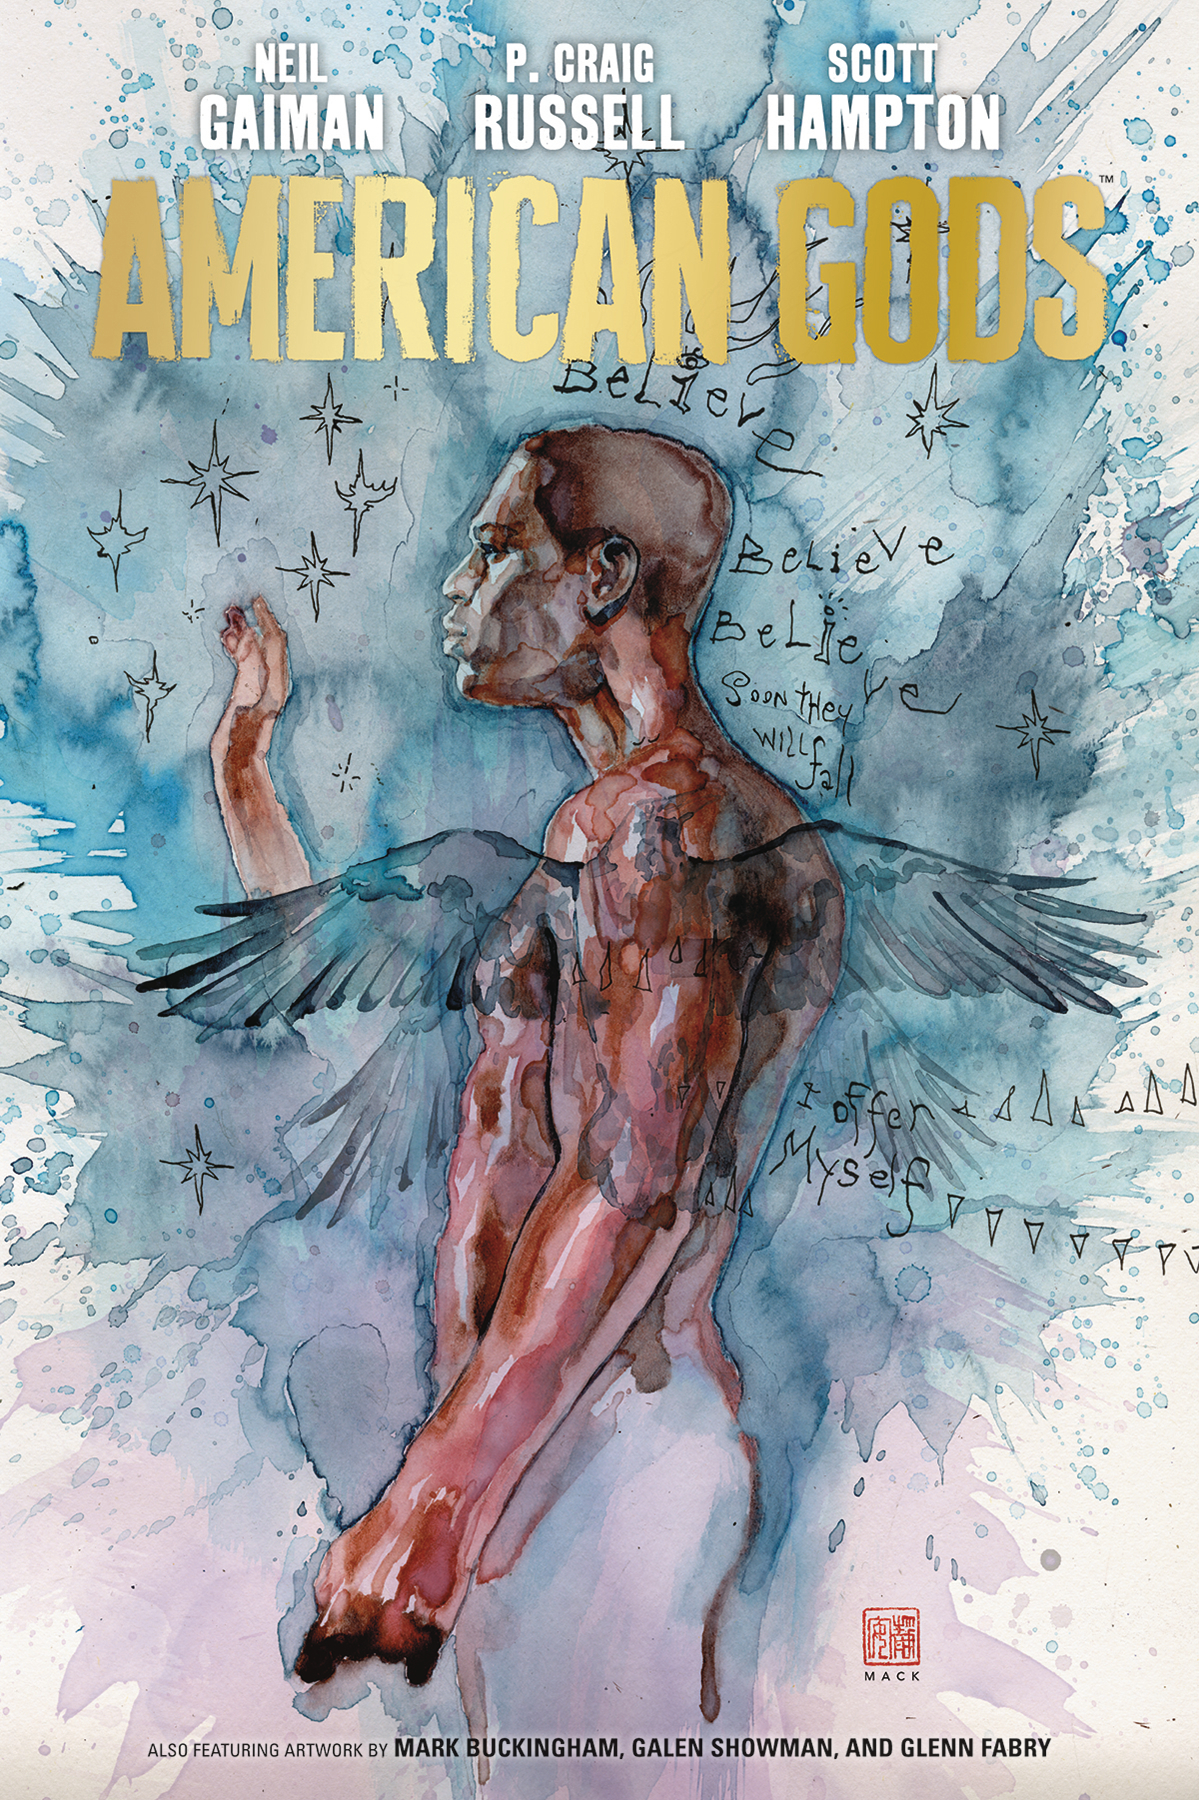 NEIL GAIMAN AMERICAN GODS HC VOL 02 MY AINSEL (DEC180366) (C